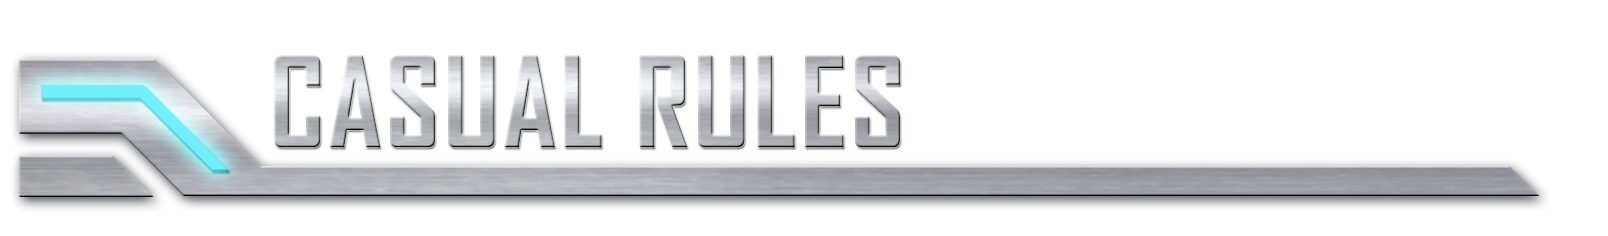 Casual Rules.png